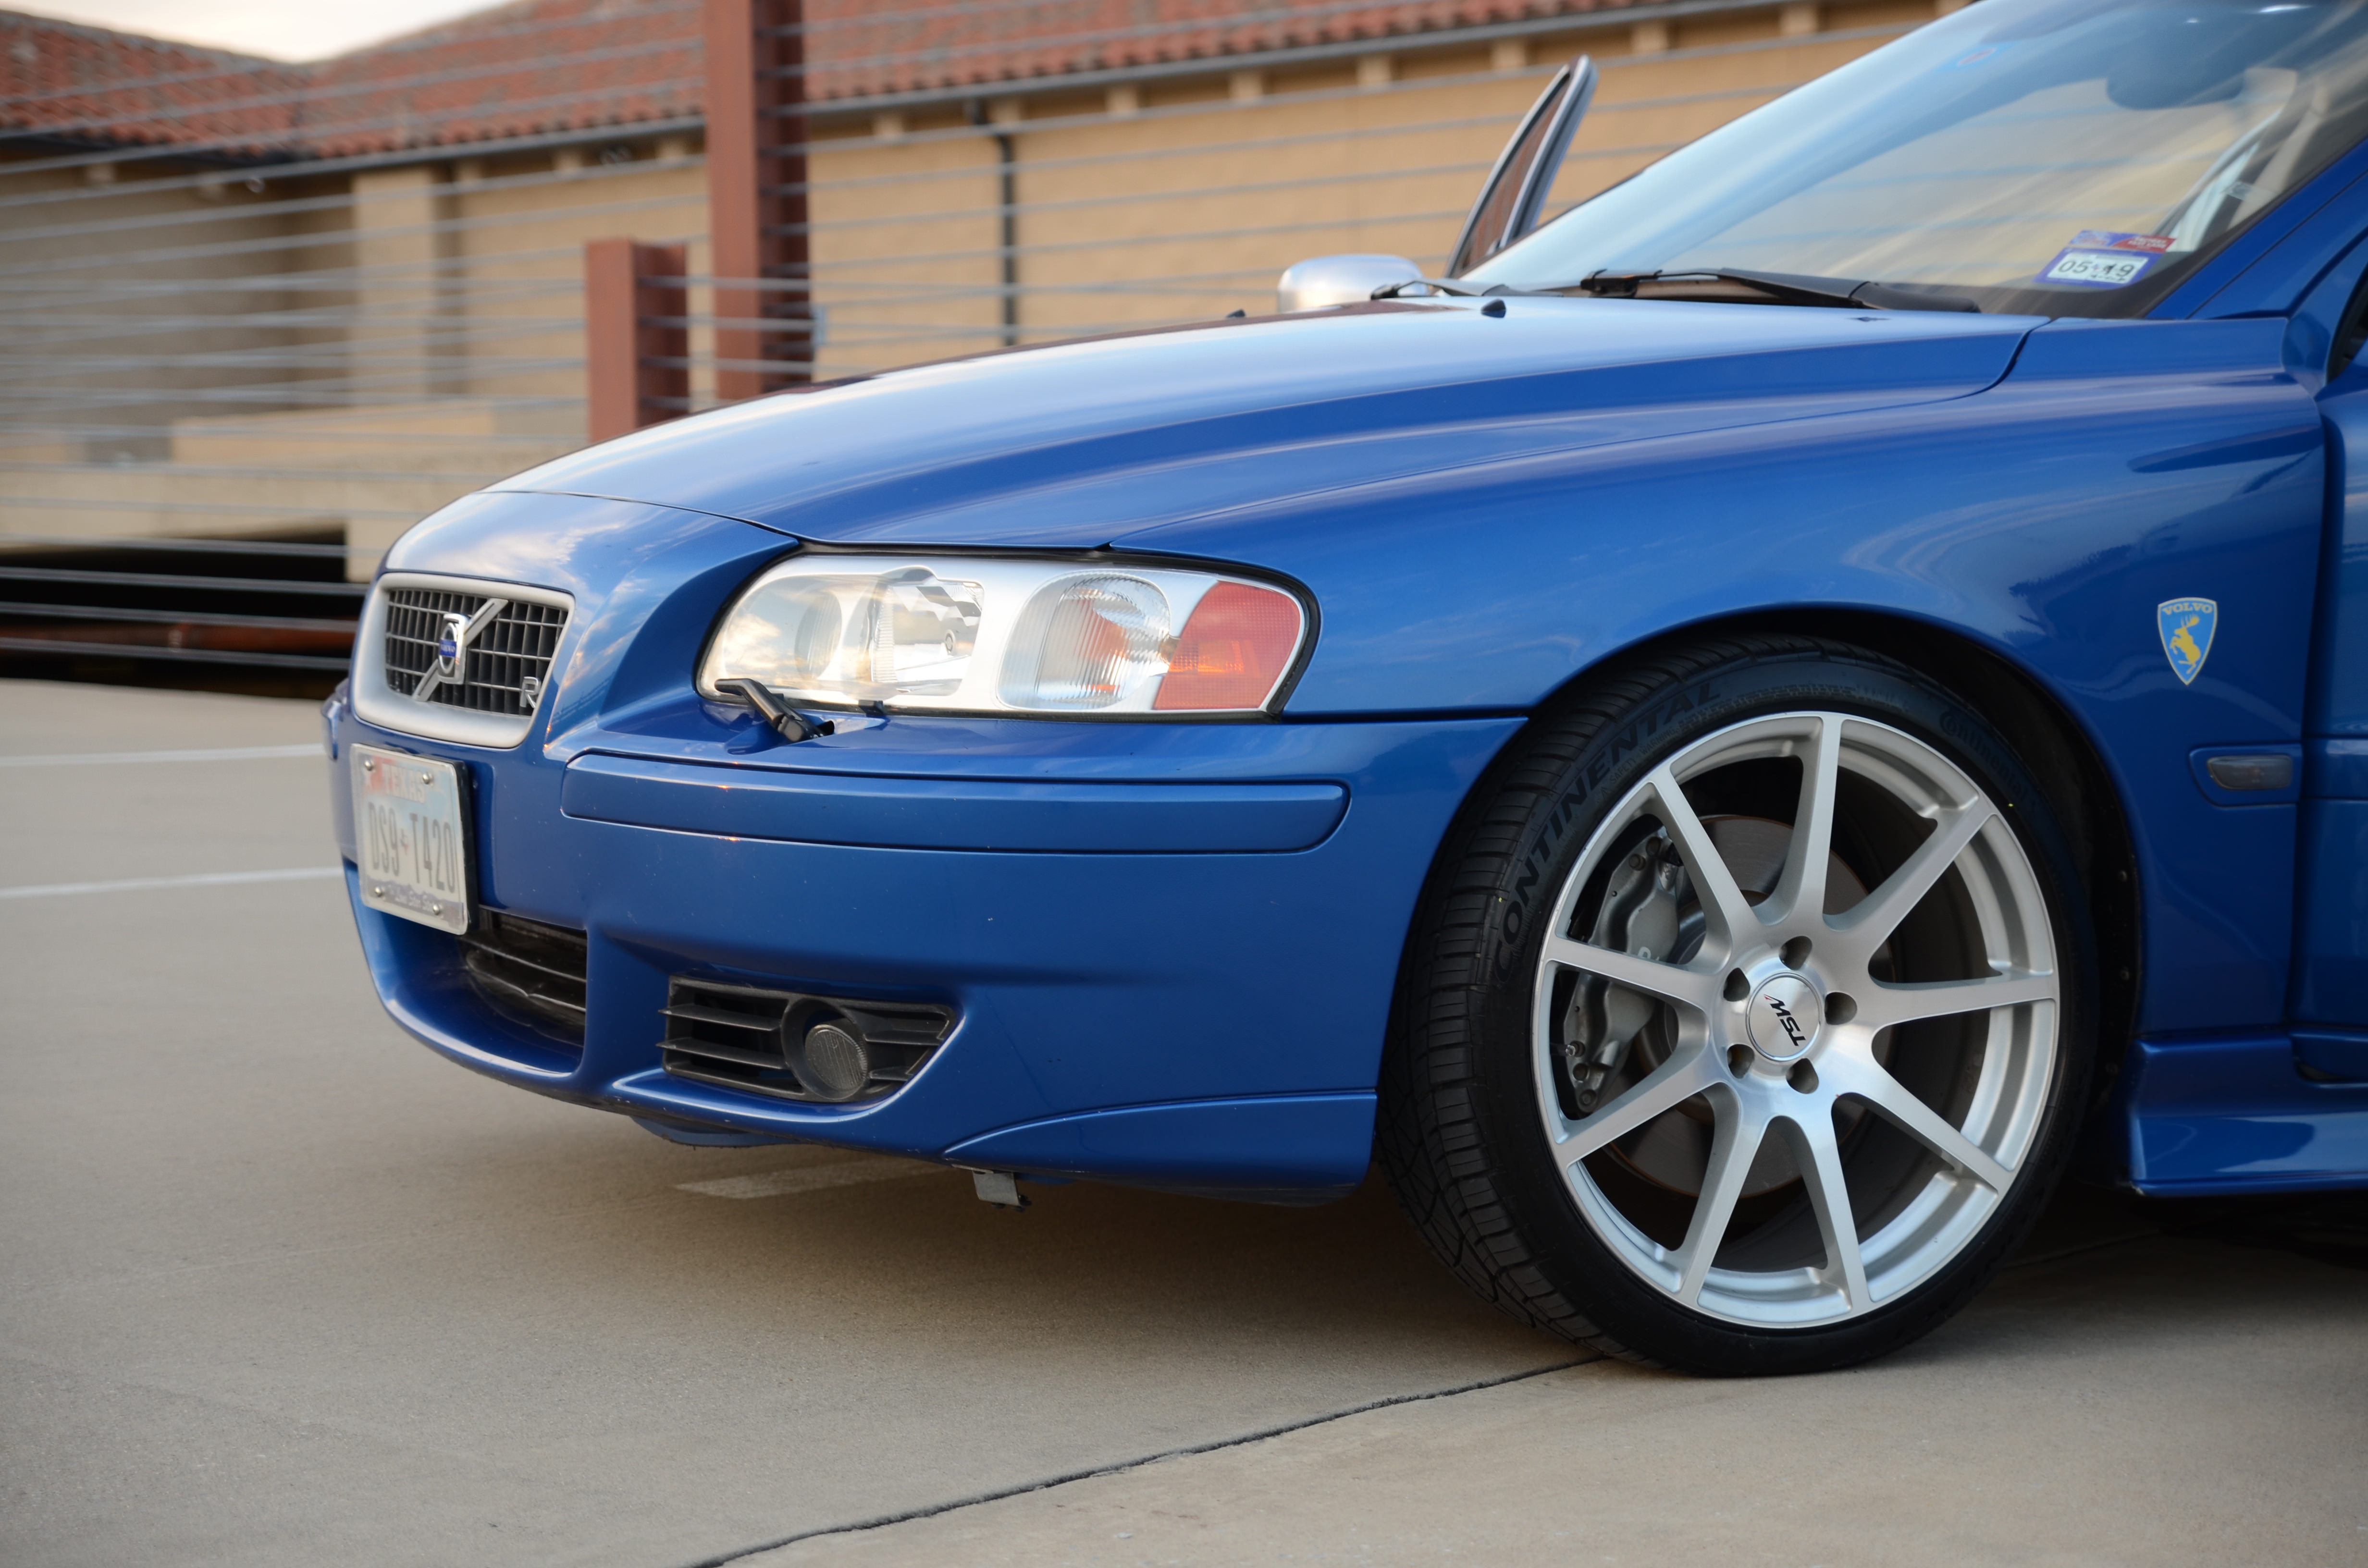 2006 Volvo S60R | Unique Cars for Sale | Cult Cars LLC